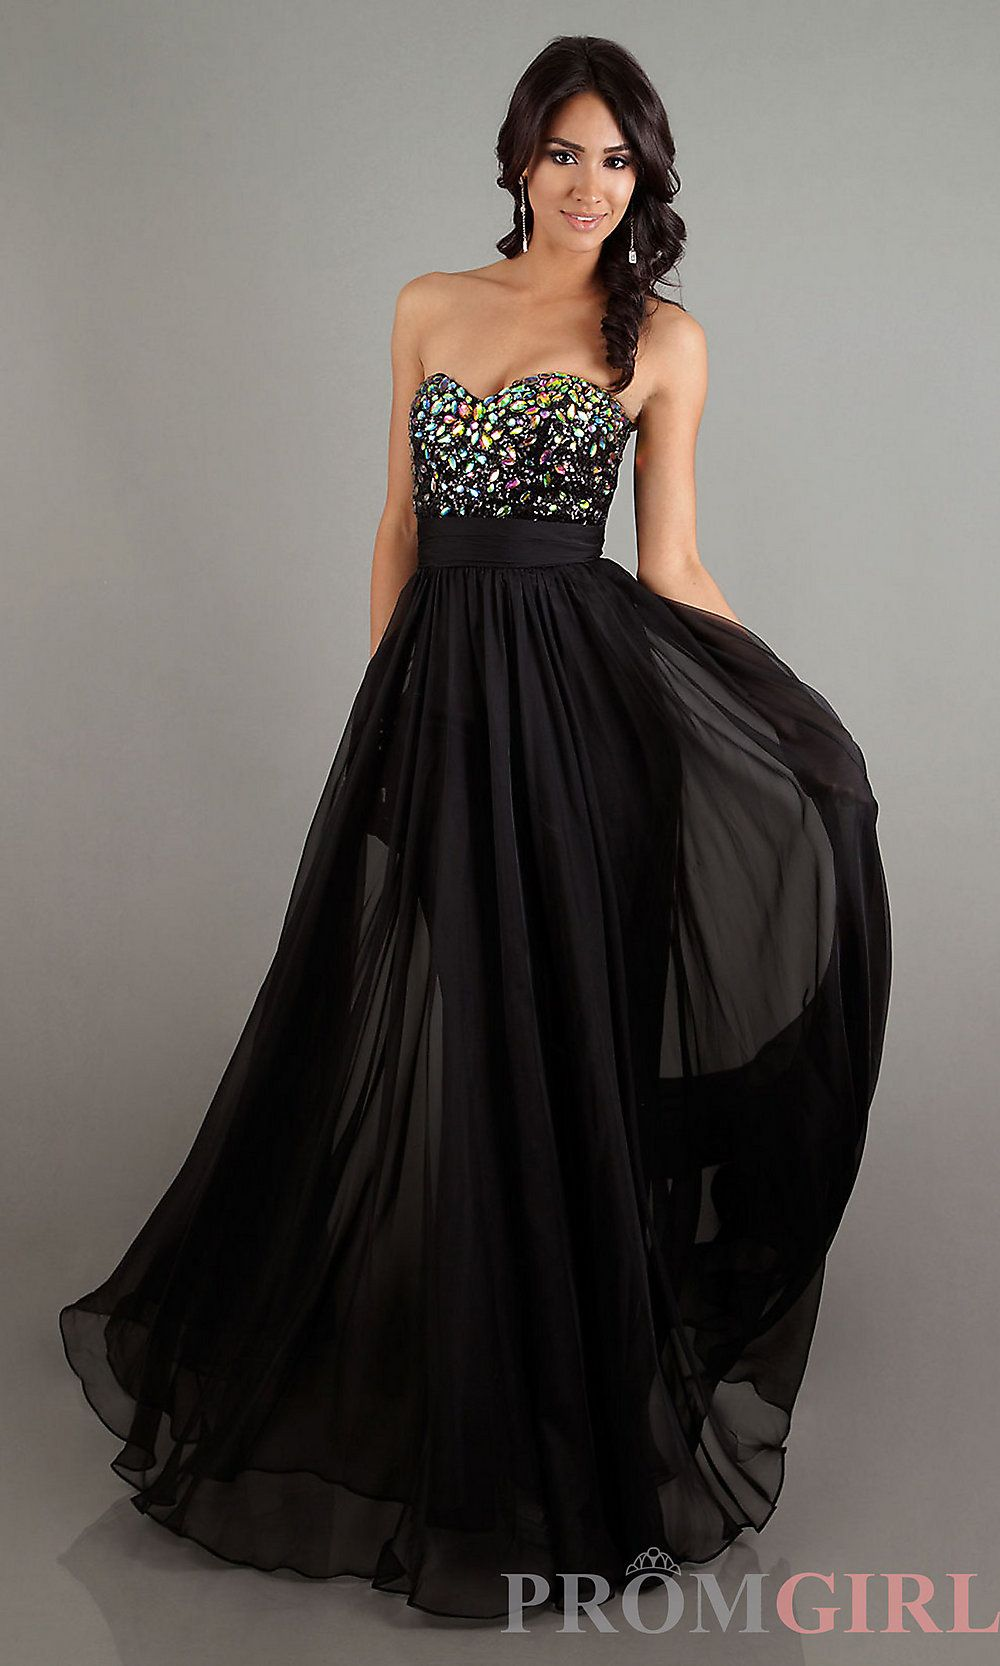 Beautiful flowy dress prom pinterest prom prom and sexy